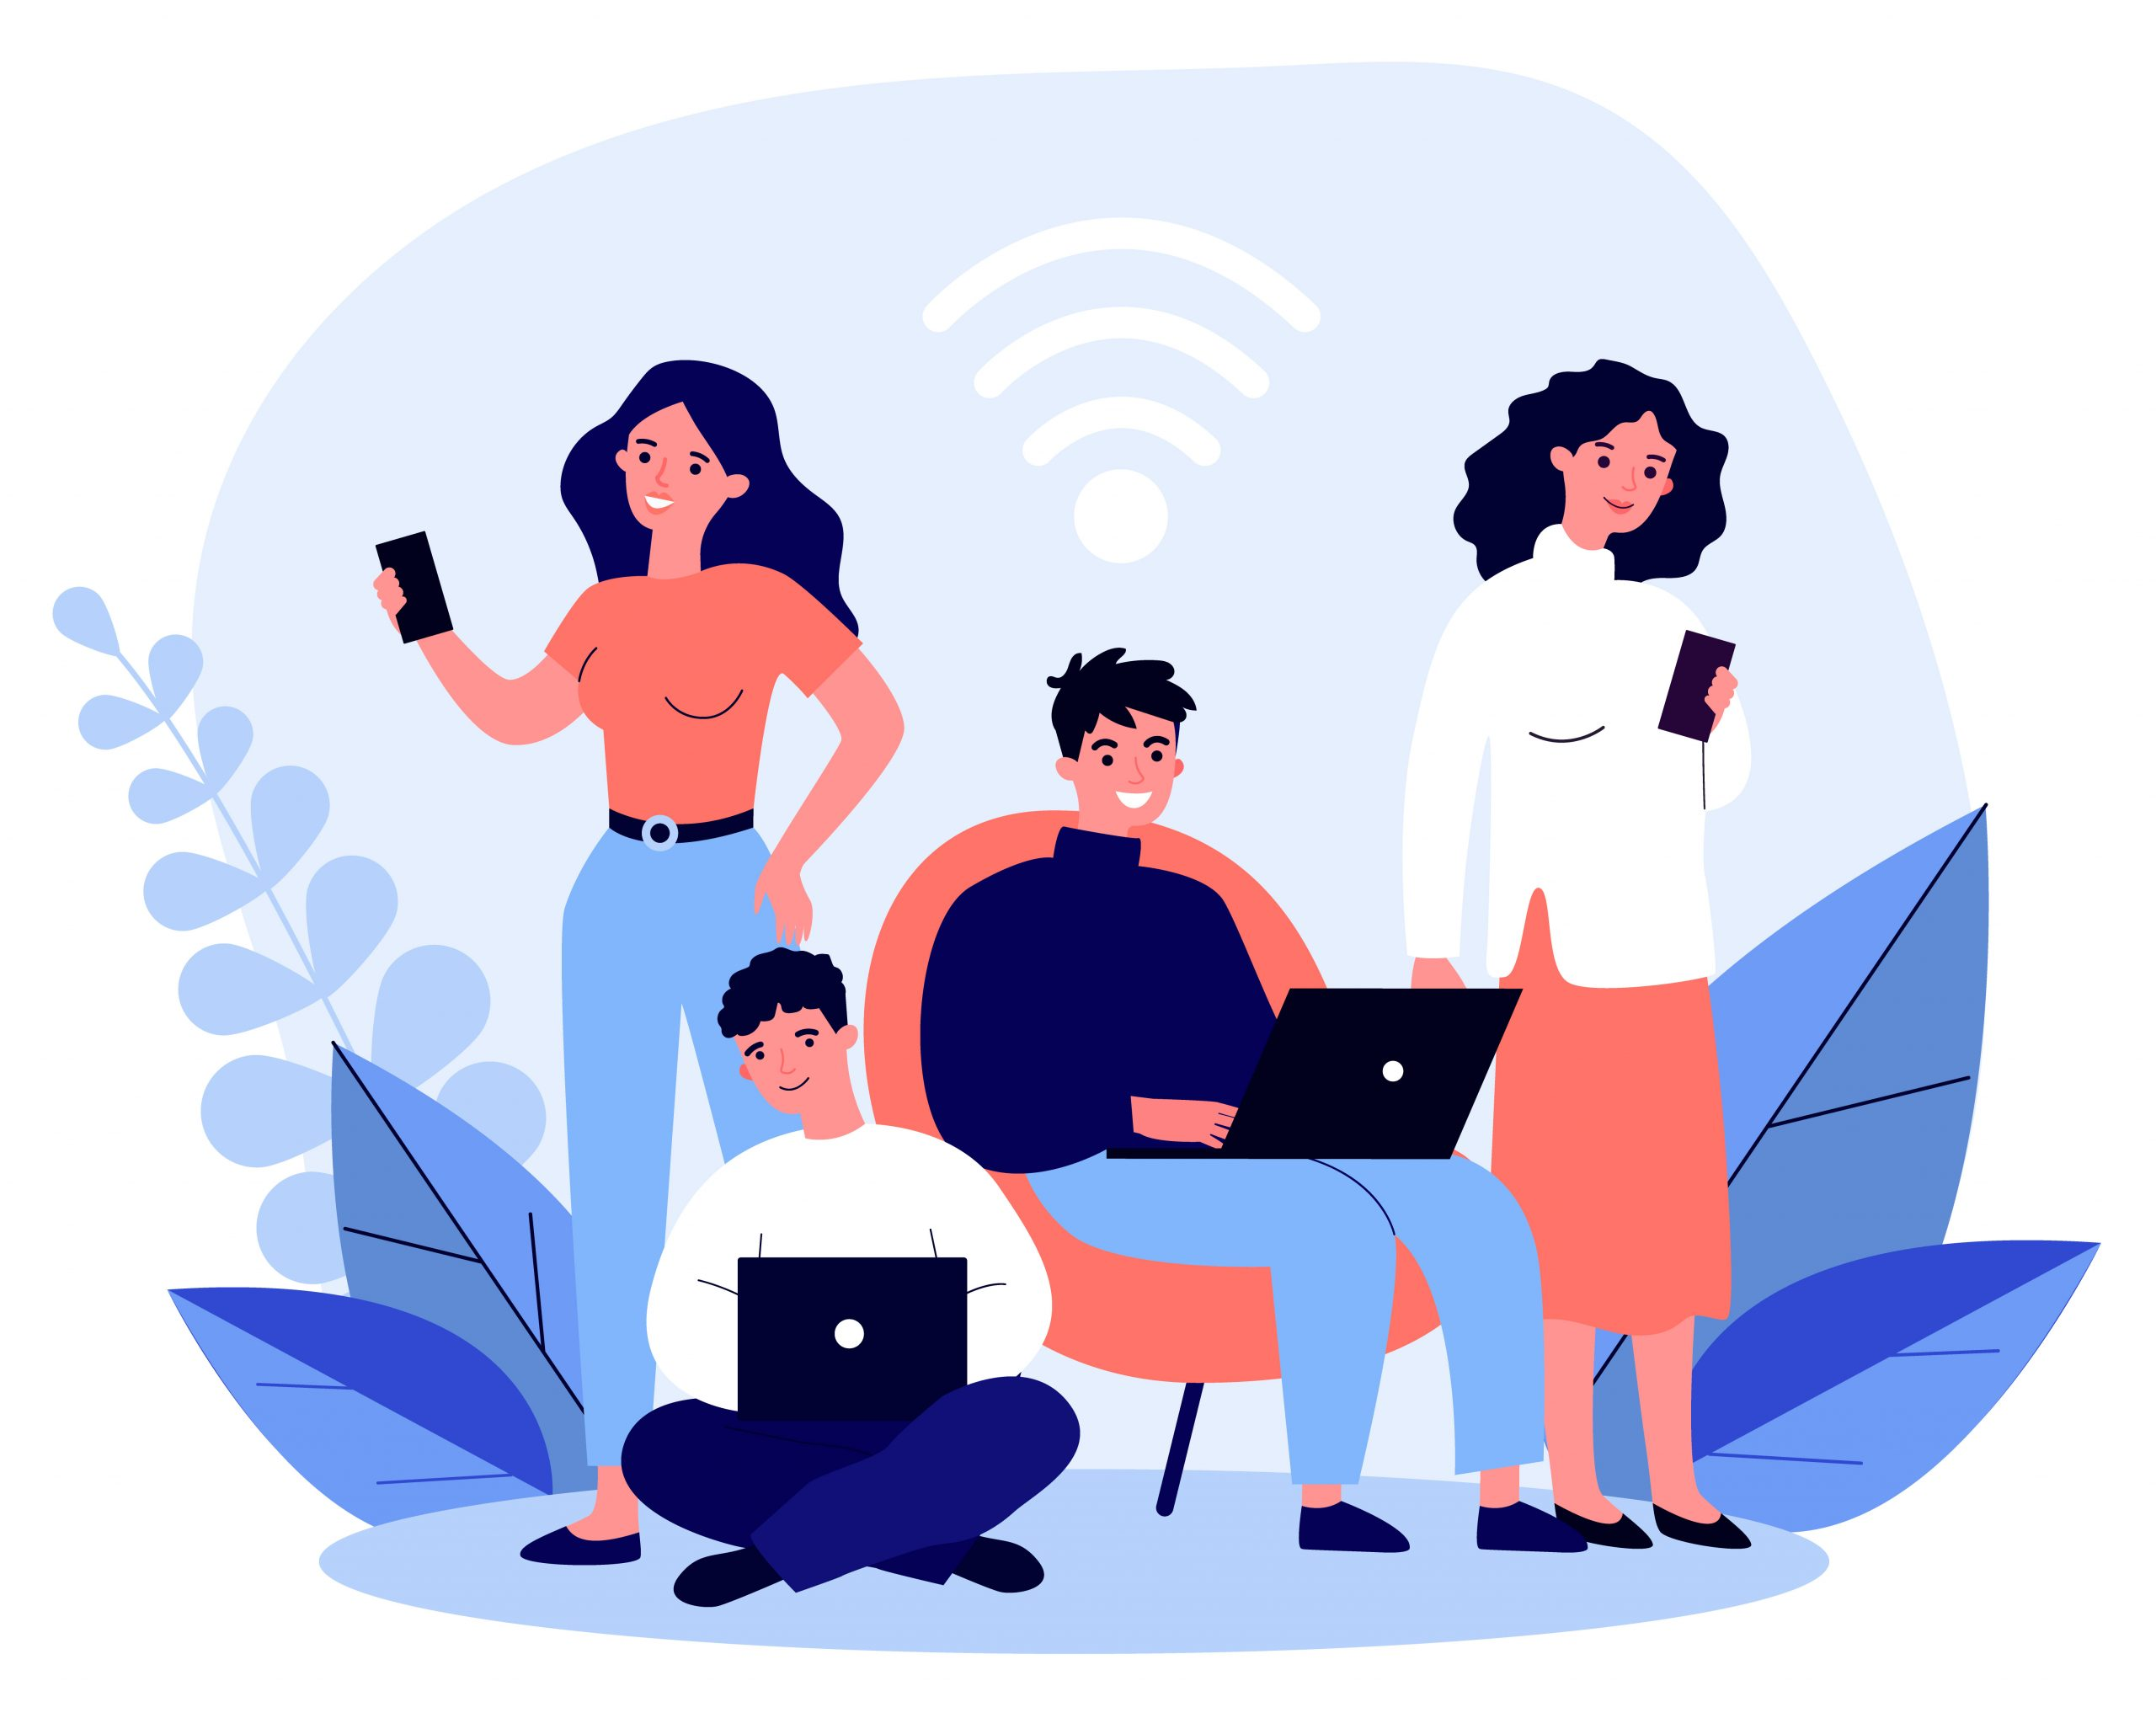 Young people browsing online via laptop and smartphone, users staying digitally secure while using Wi-Fi hotspots